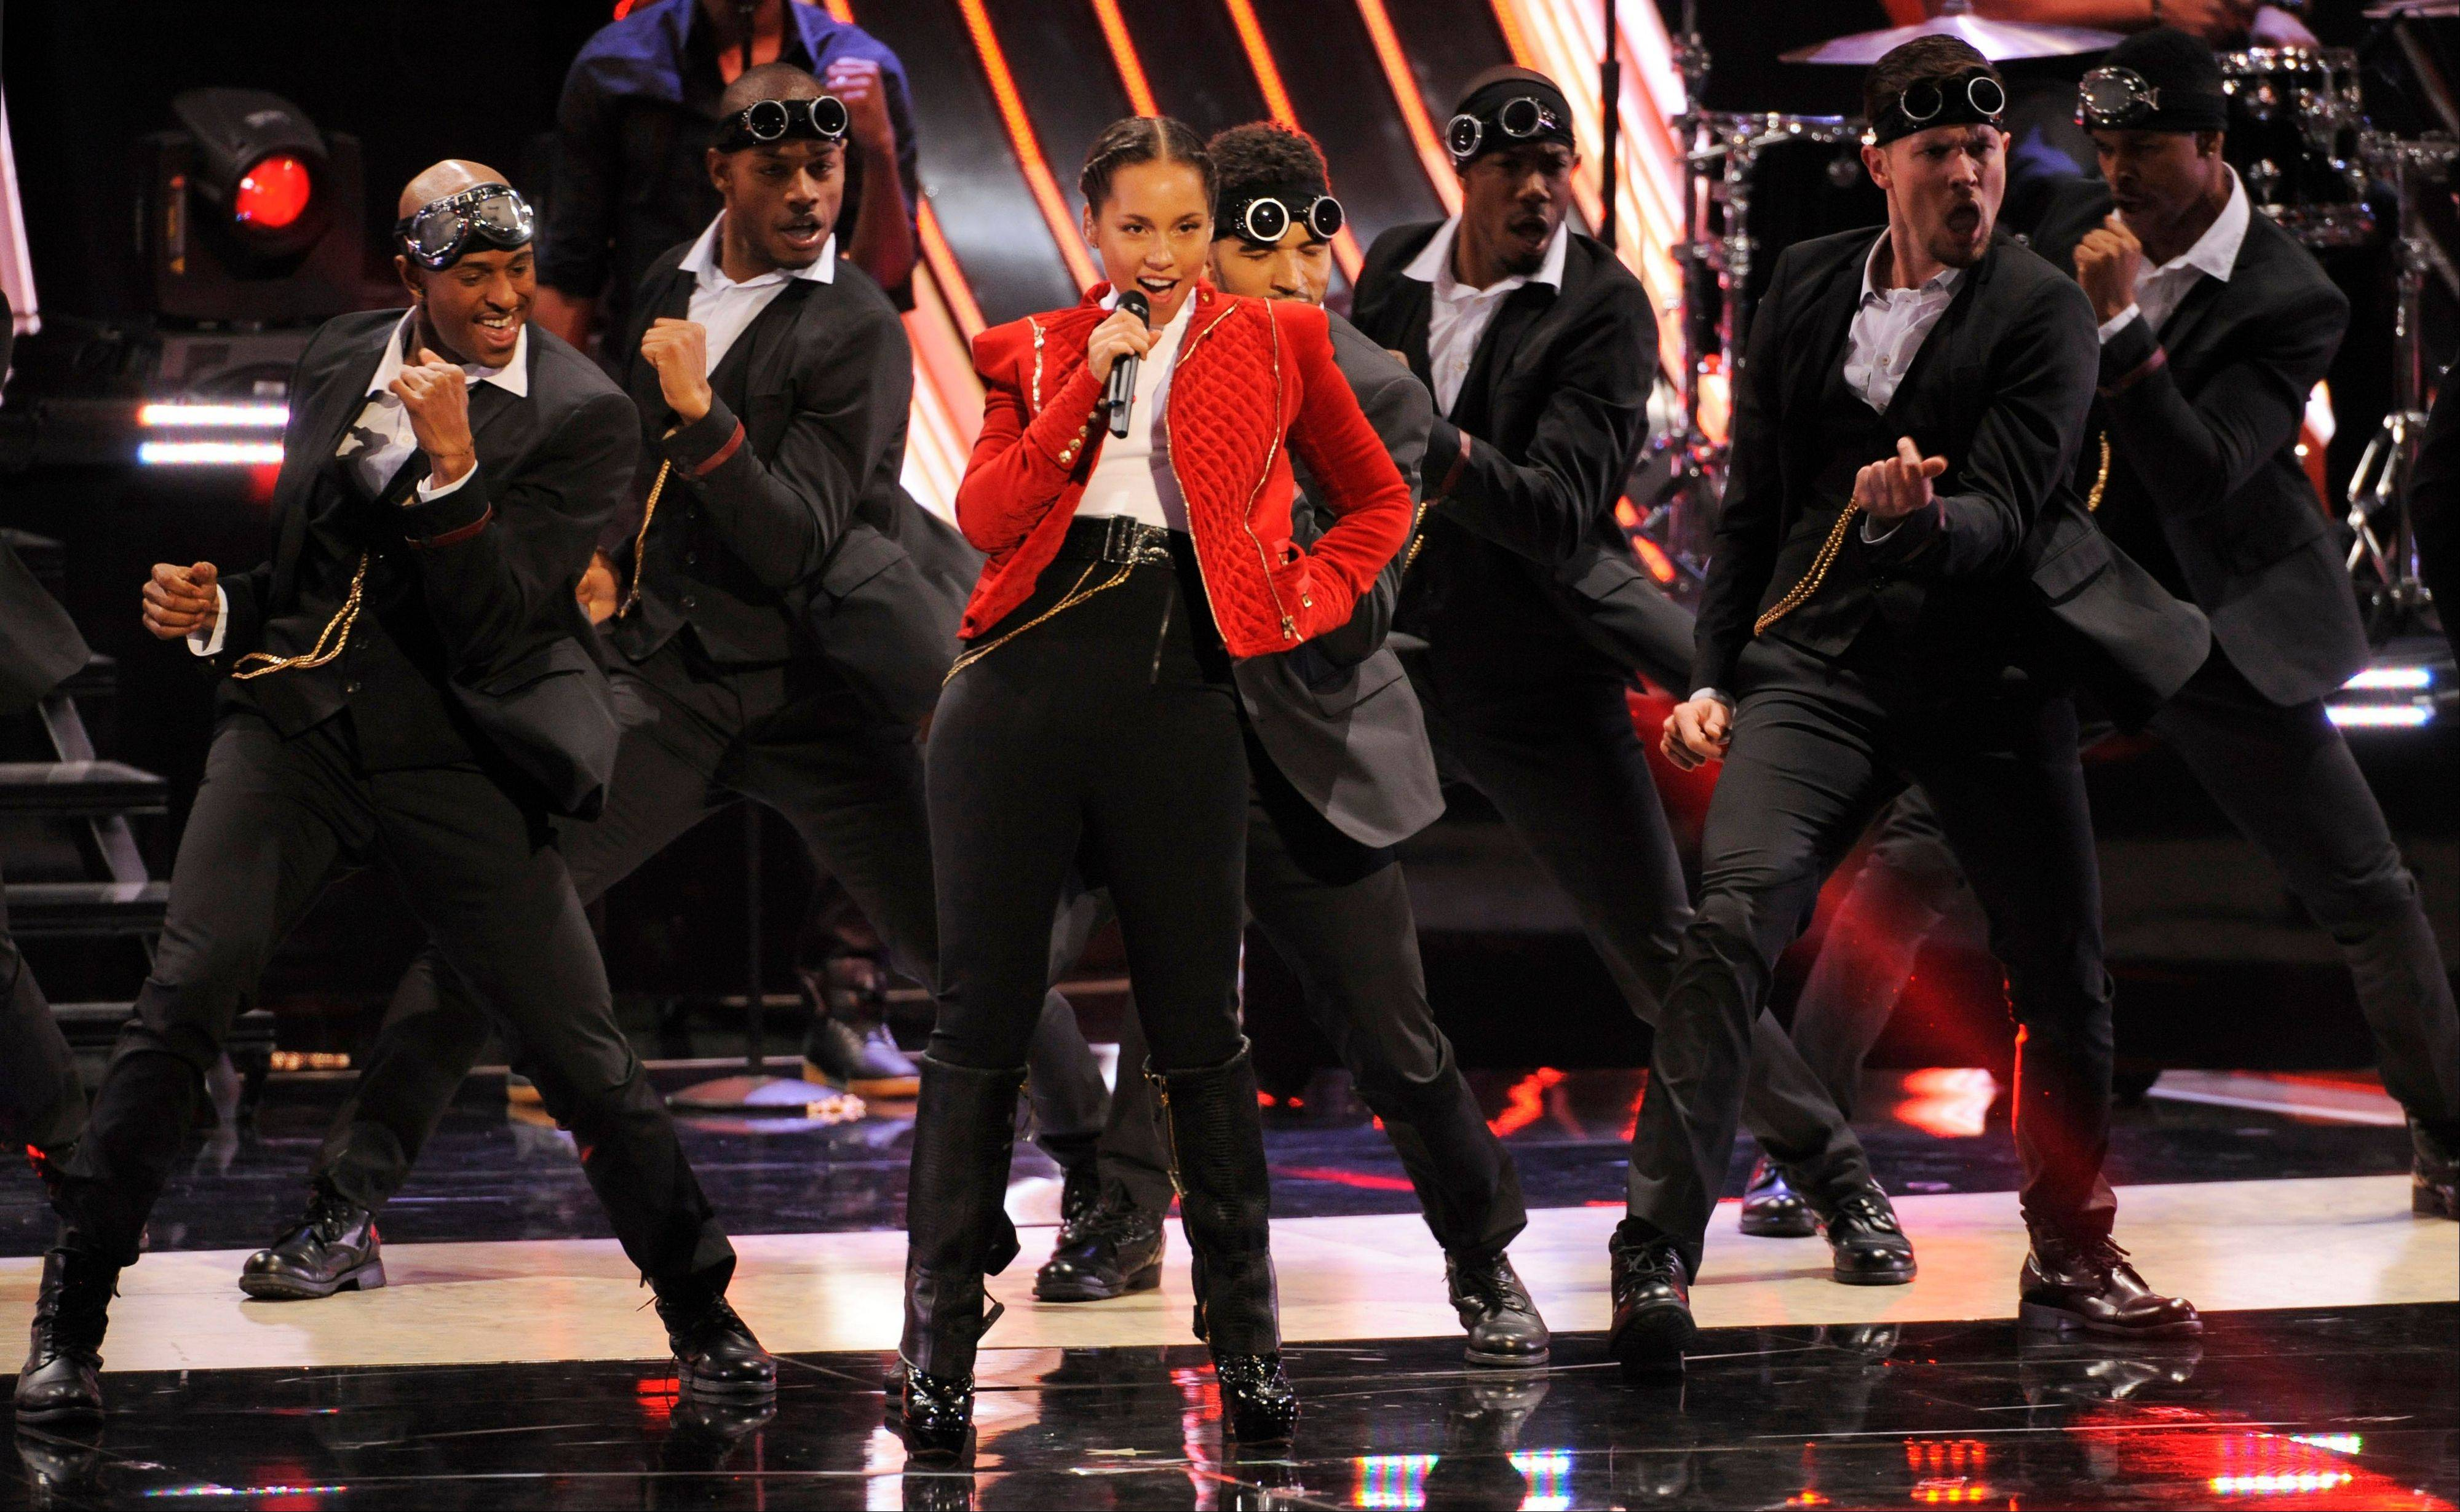 Alicia Keys performs at the People�s Choice Awards at the Nokia Theatre on Wednesday Jan. 9, 2013, in Los Angeles.